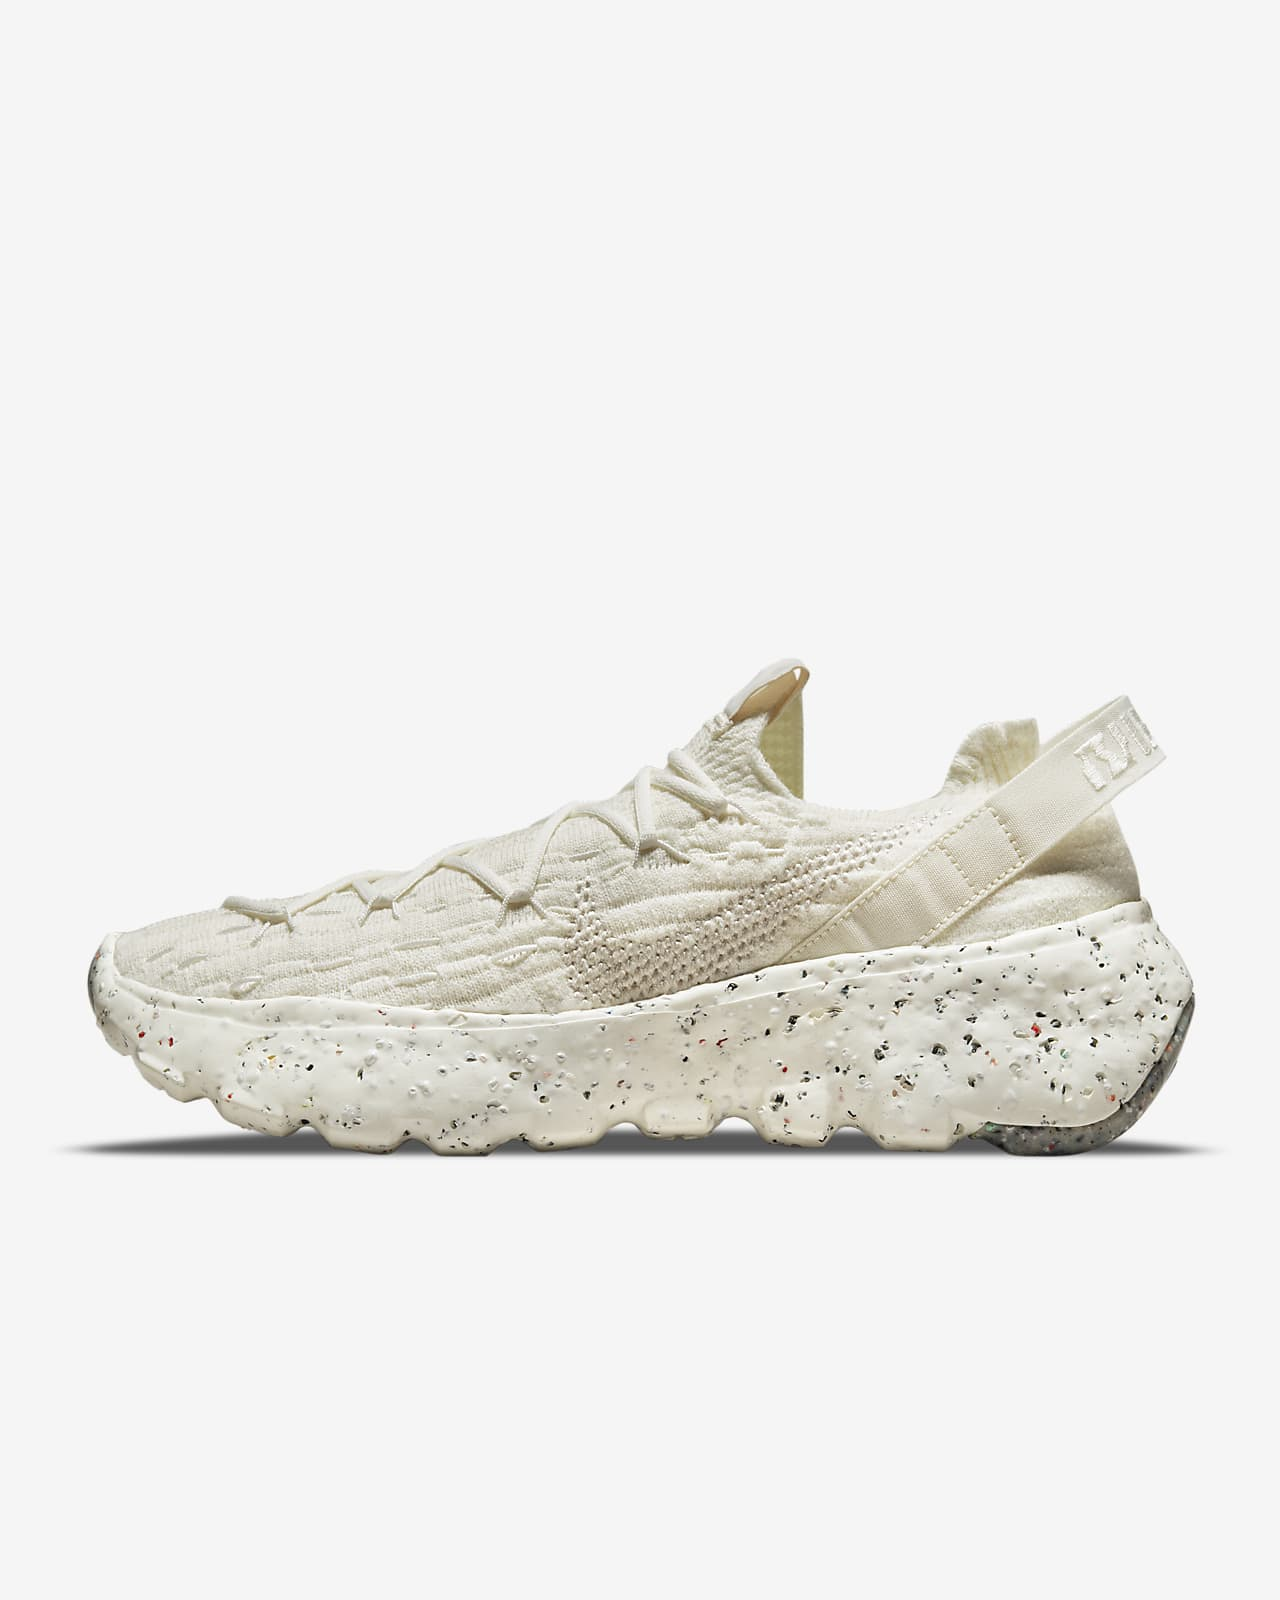 Chaussure Nike Space Hippie 04 pour Homme